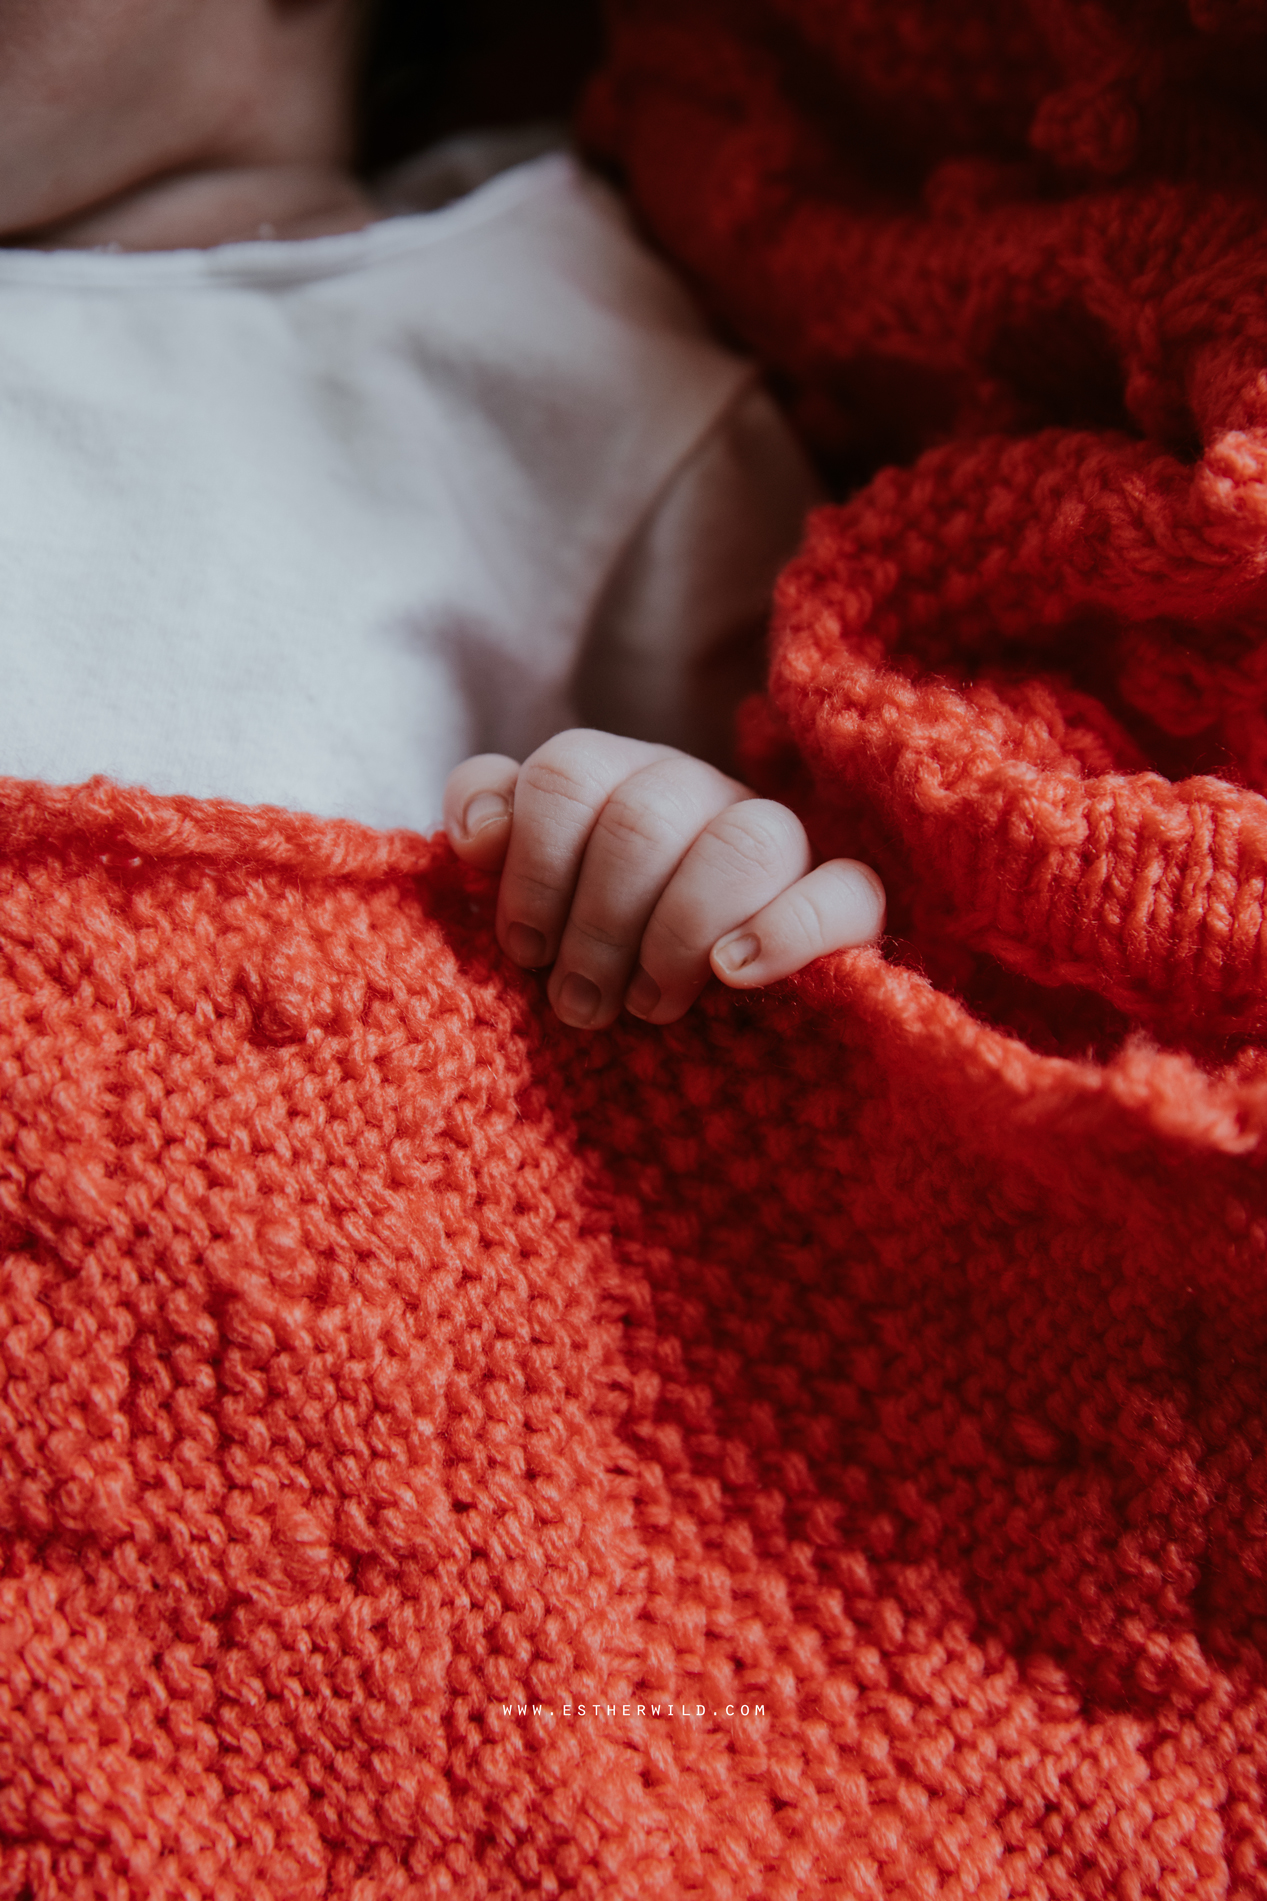 Newborn_Family_Photographer_London_Home_Lifestyle_Norfolk_3R8A4102.jpg